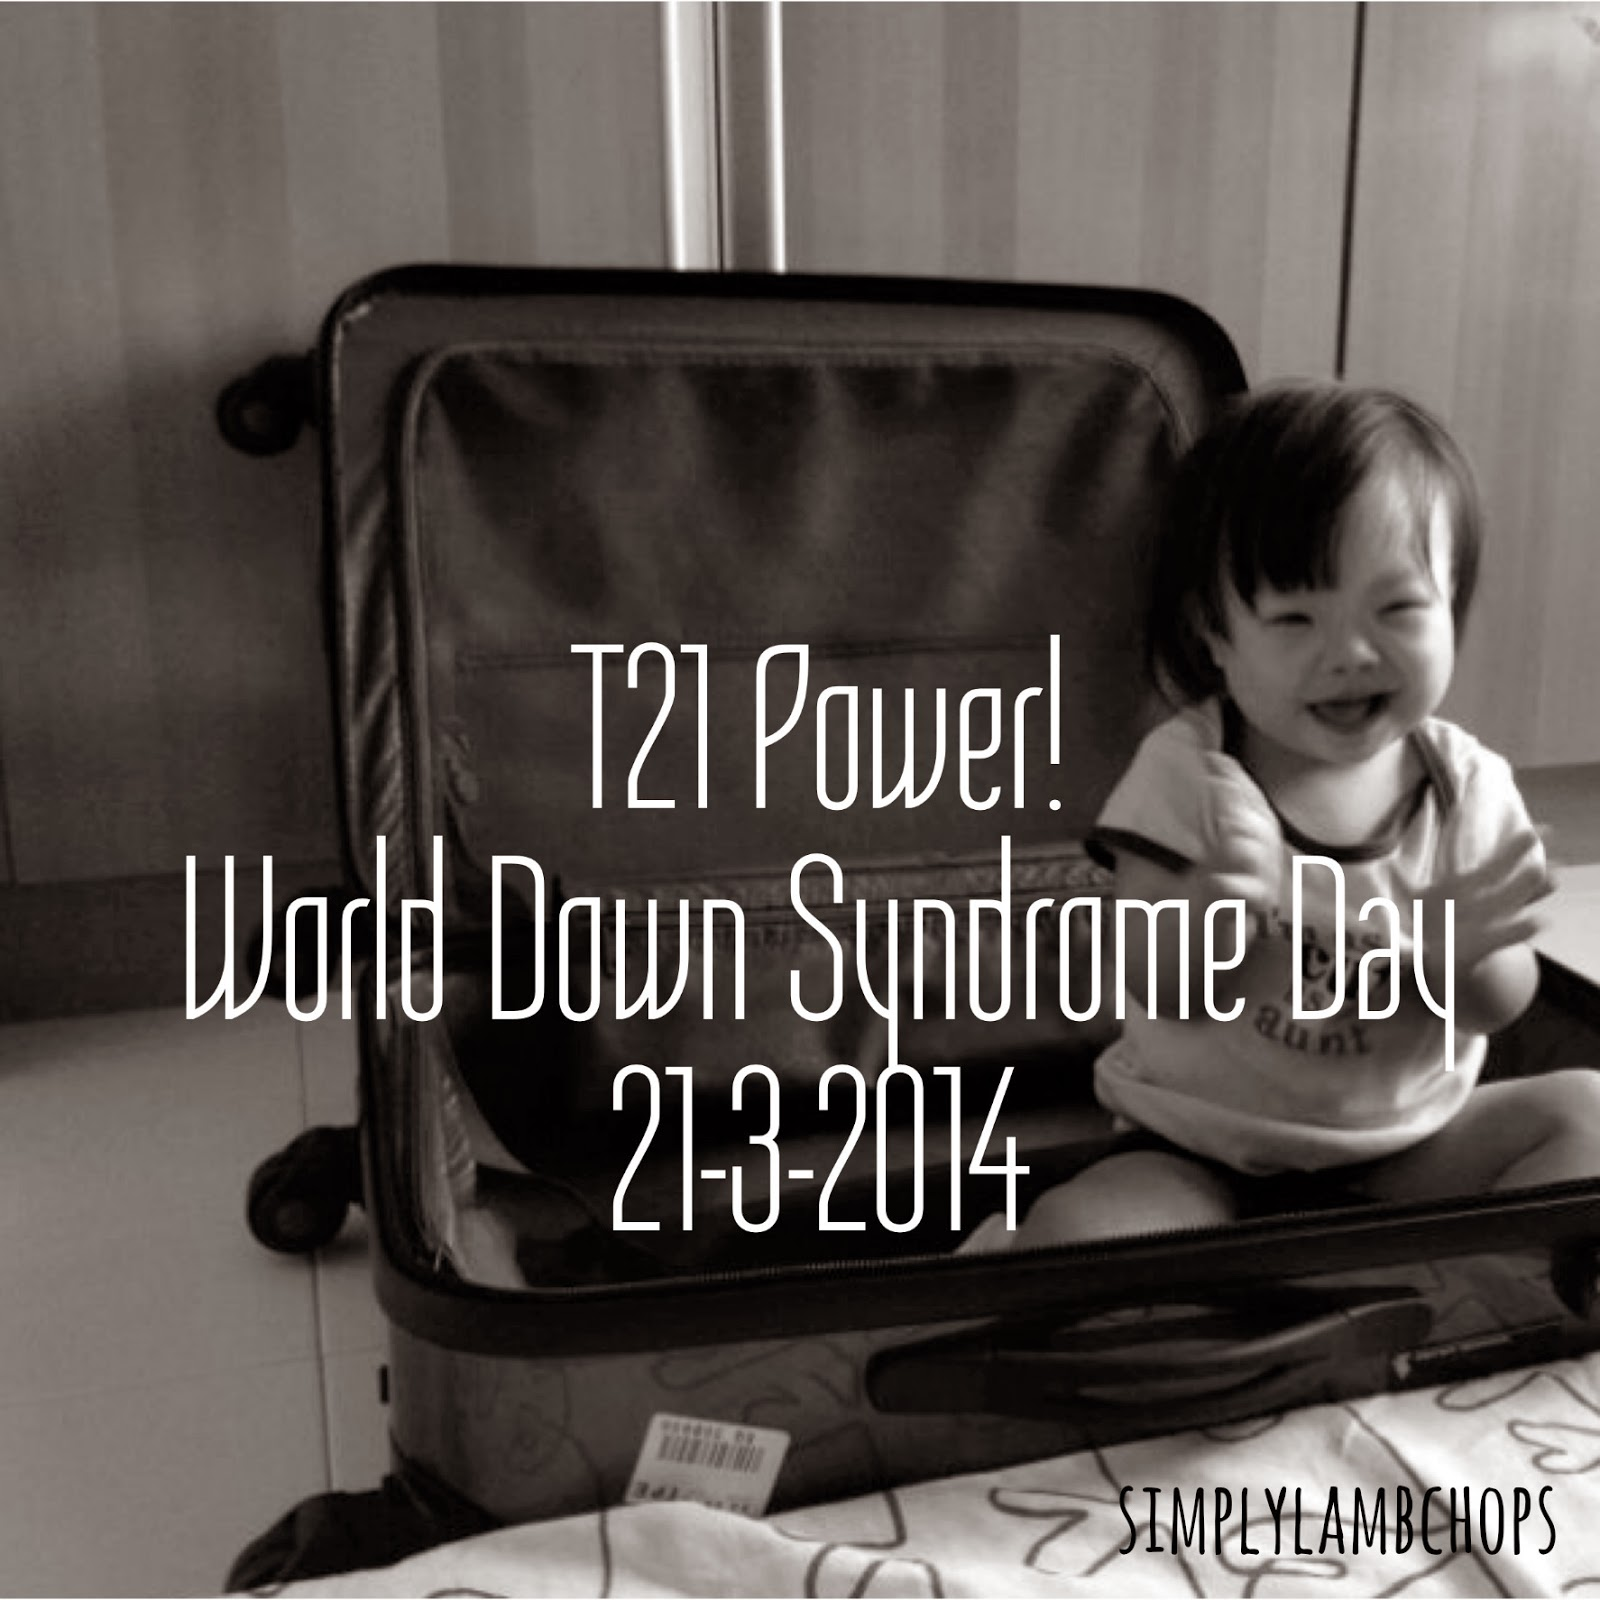 World Down Syndrome Day 2014 Reflections by Simply Lambchops